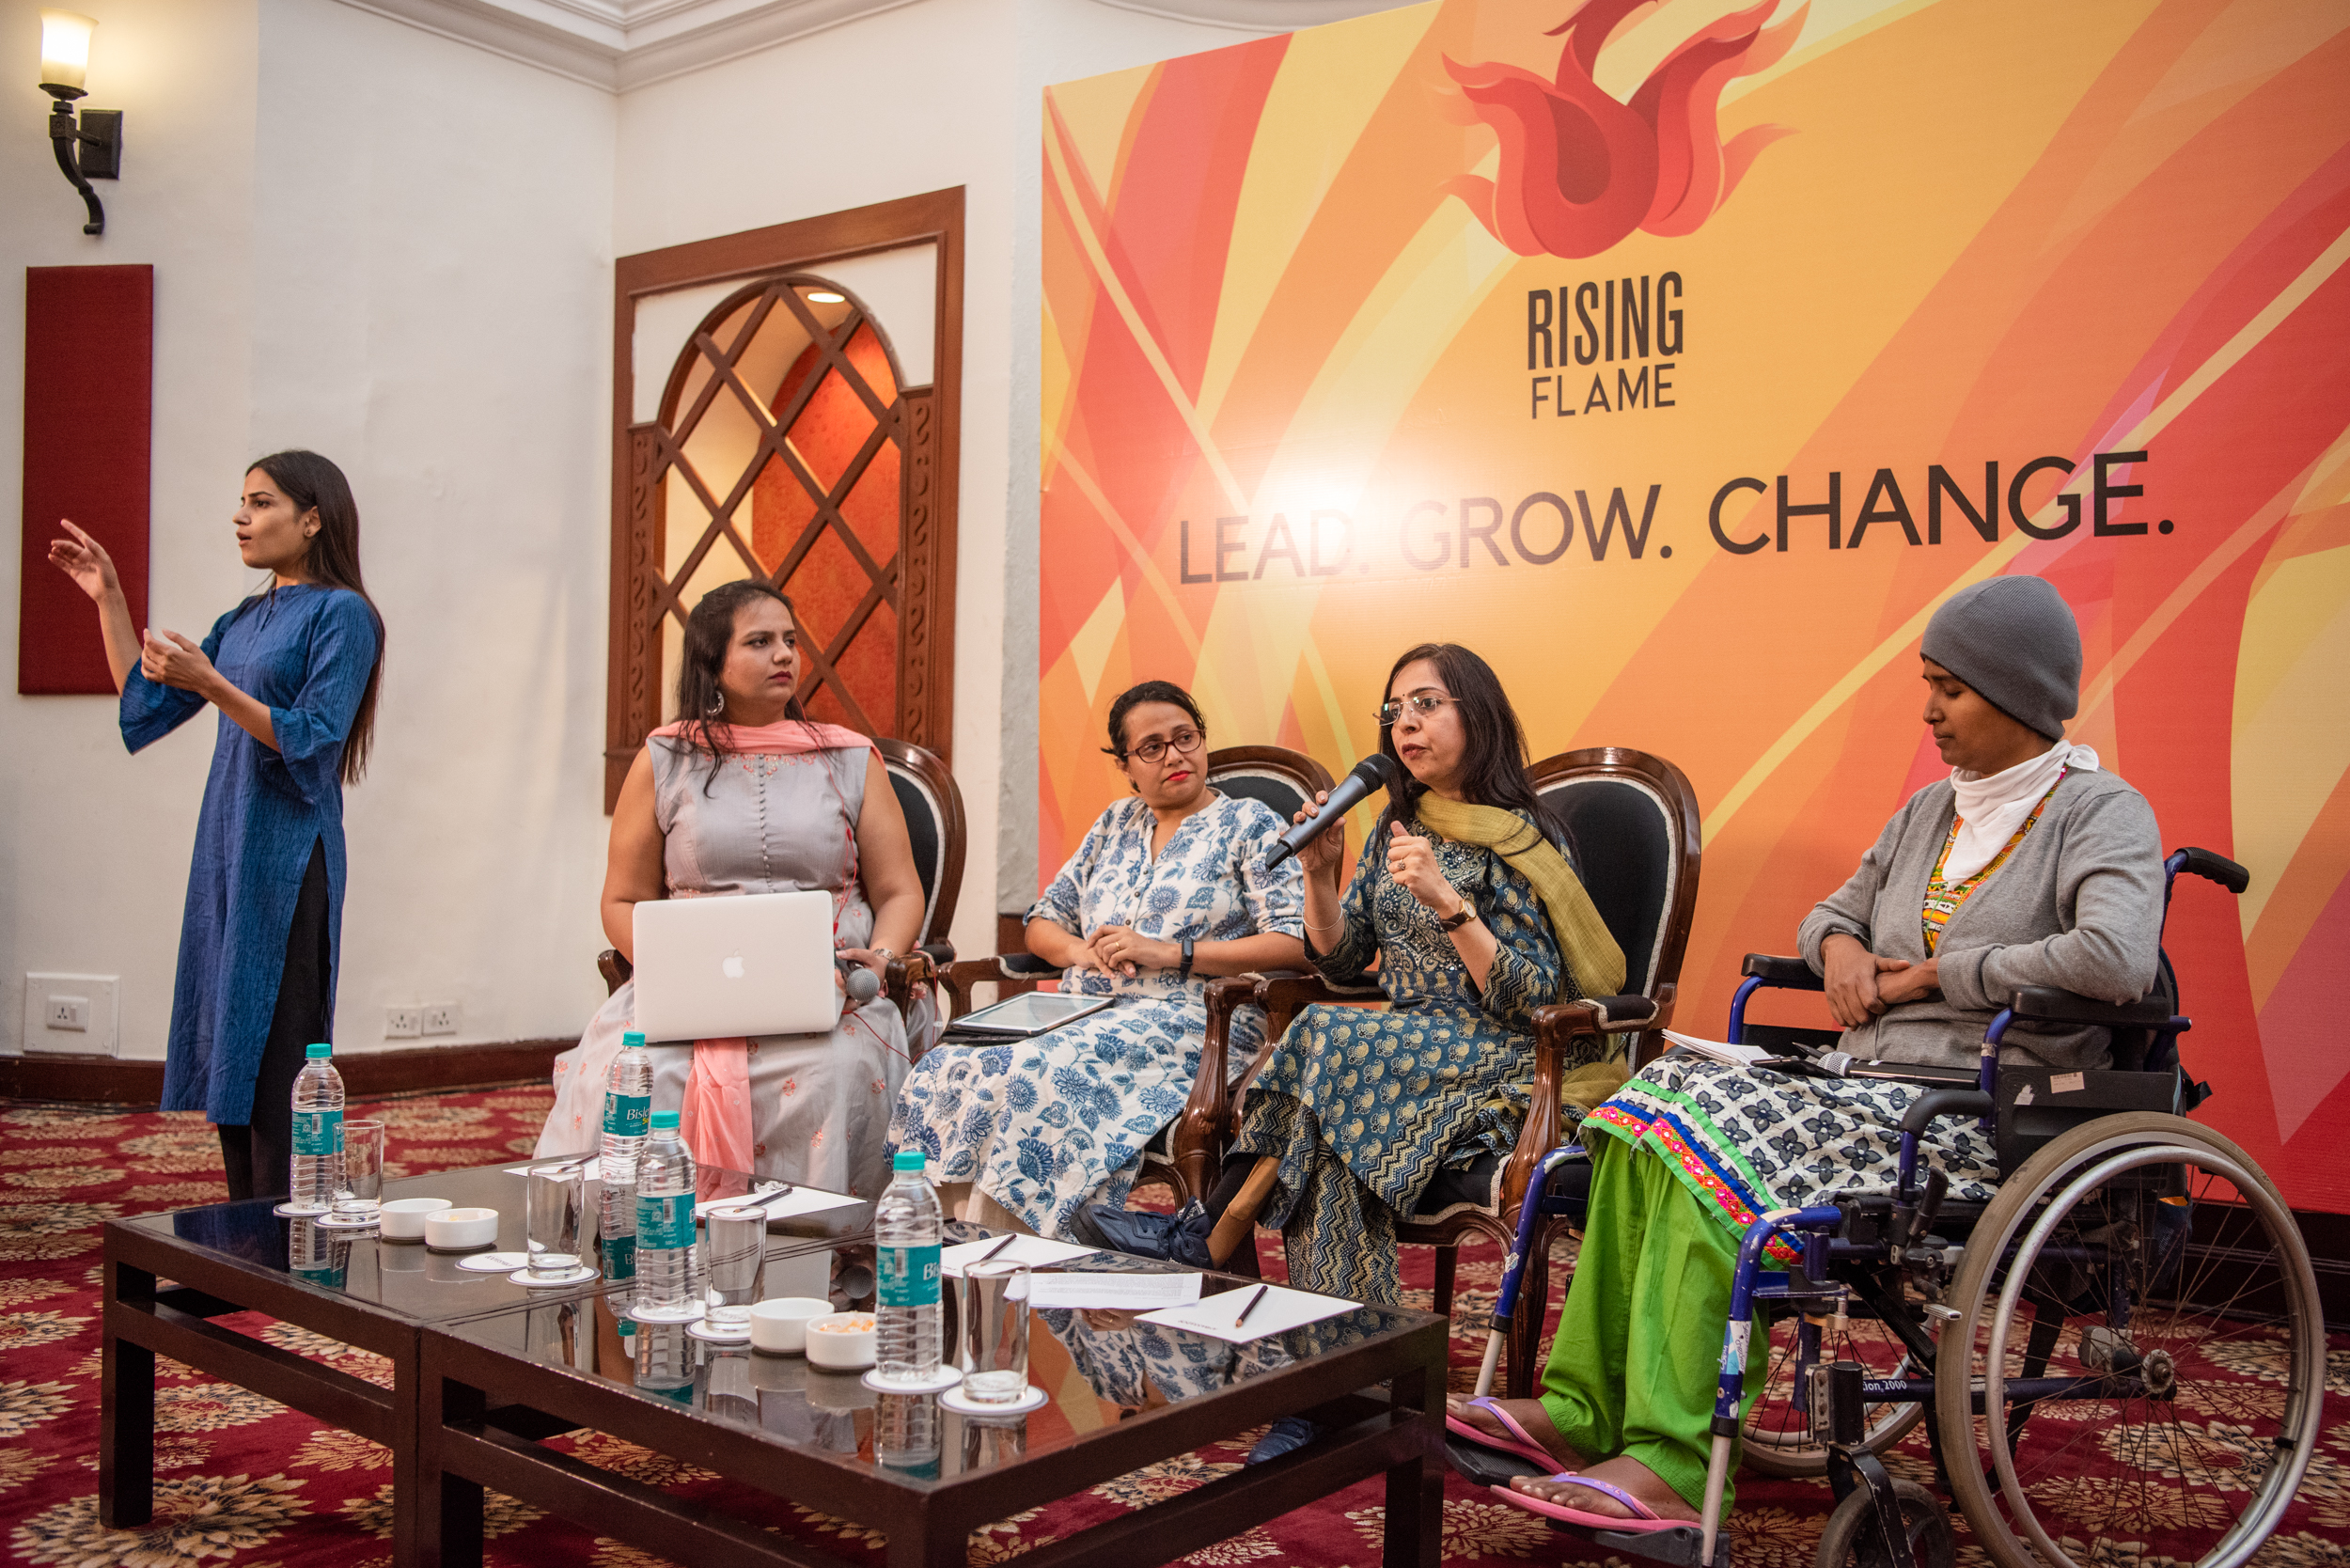 Panel left to right- sign language interpreter, Nidhi Goyal, Amba Salelkar, Meenu Bhambani and Smitha Sadasivan. Meenu is speaking, everyone else is looking at her and listening